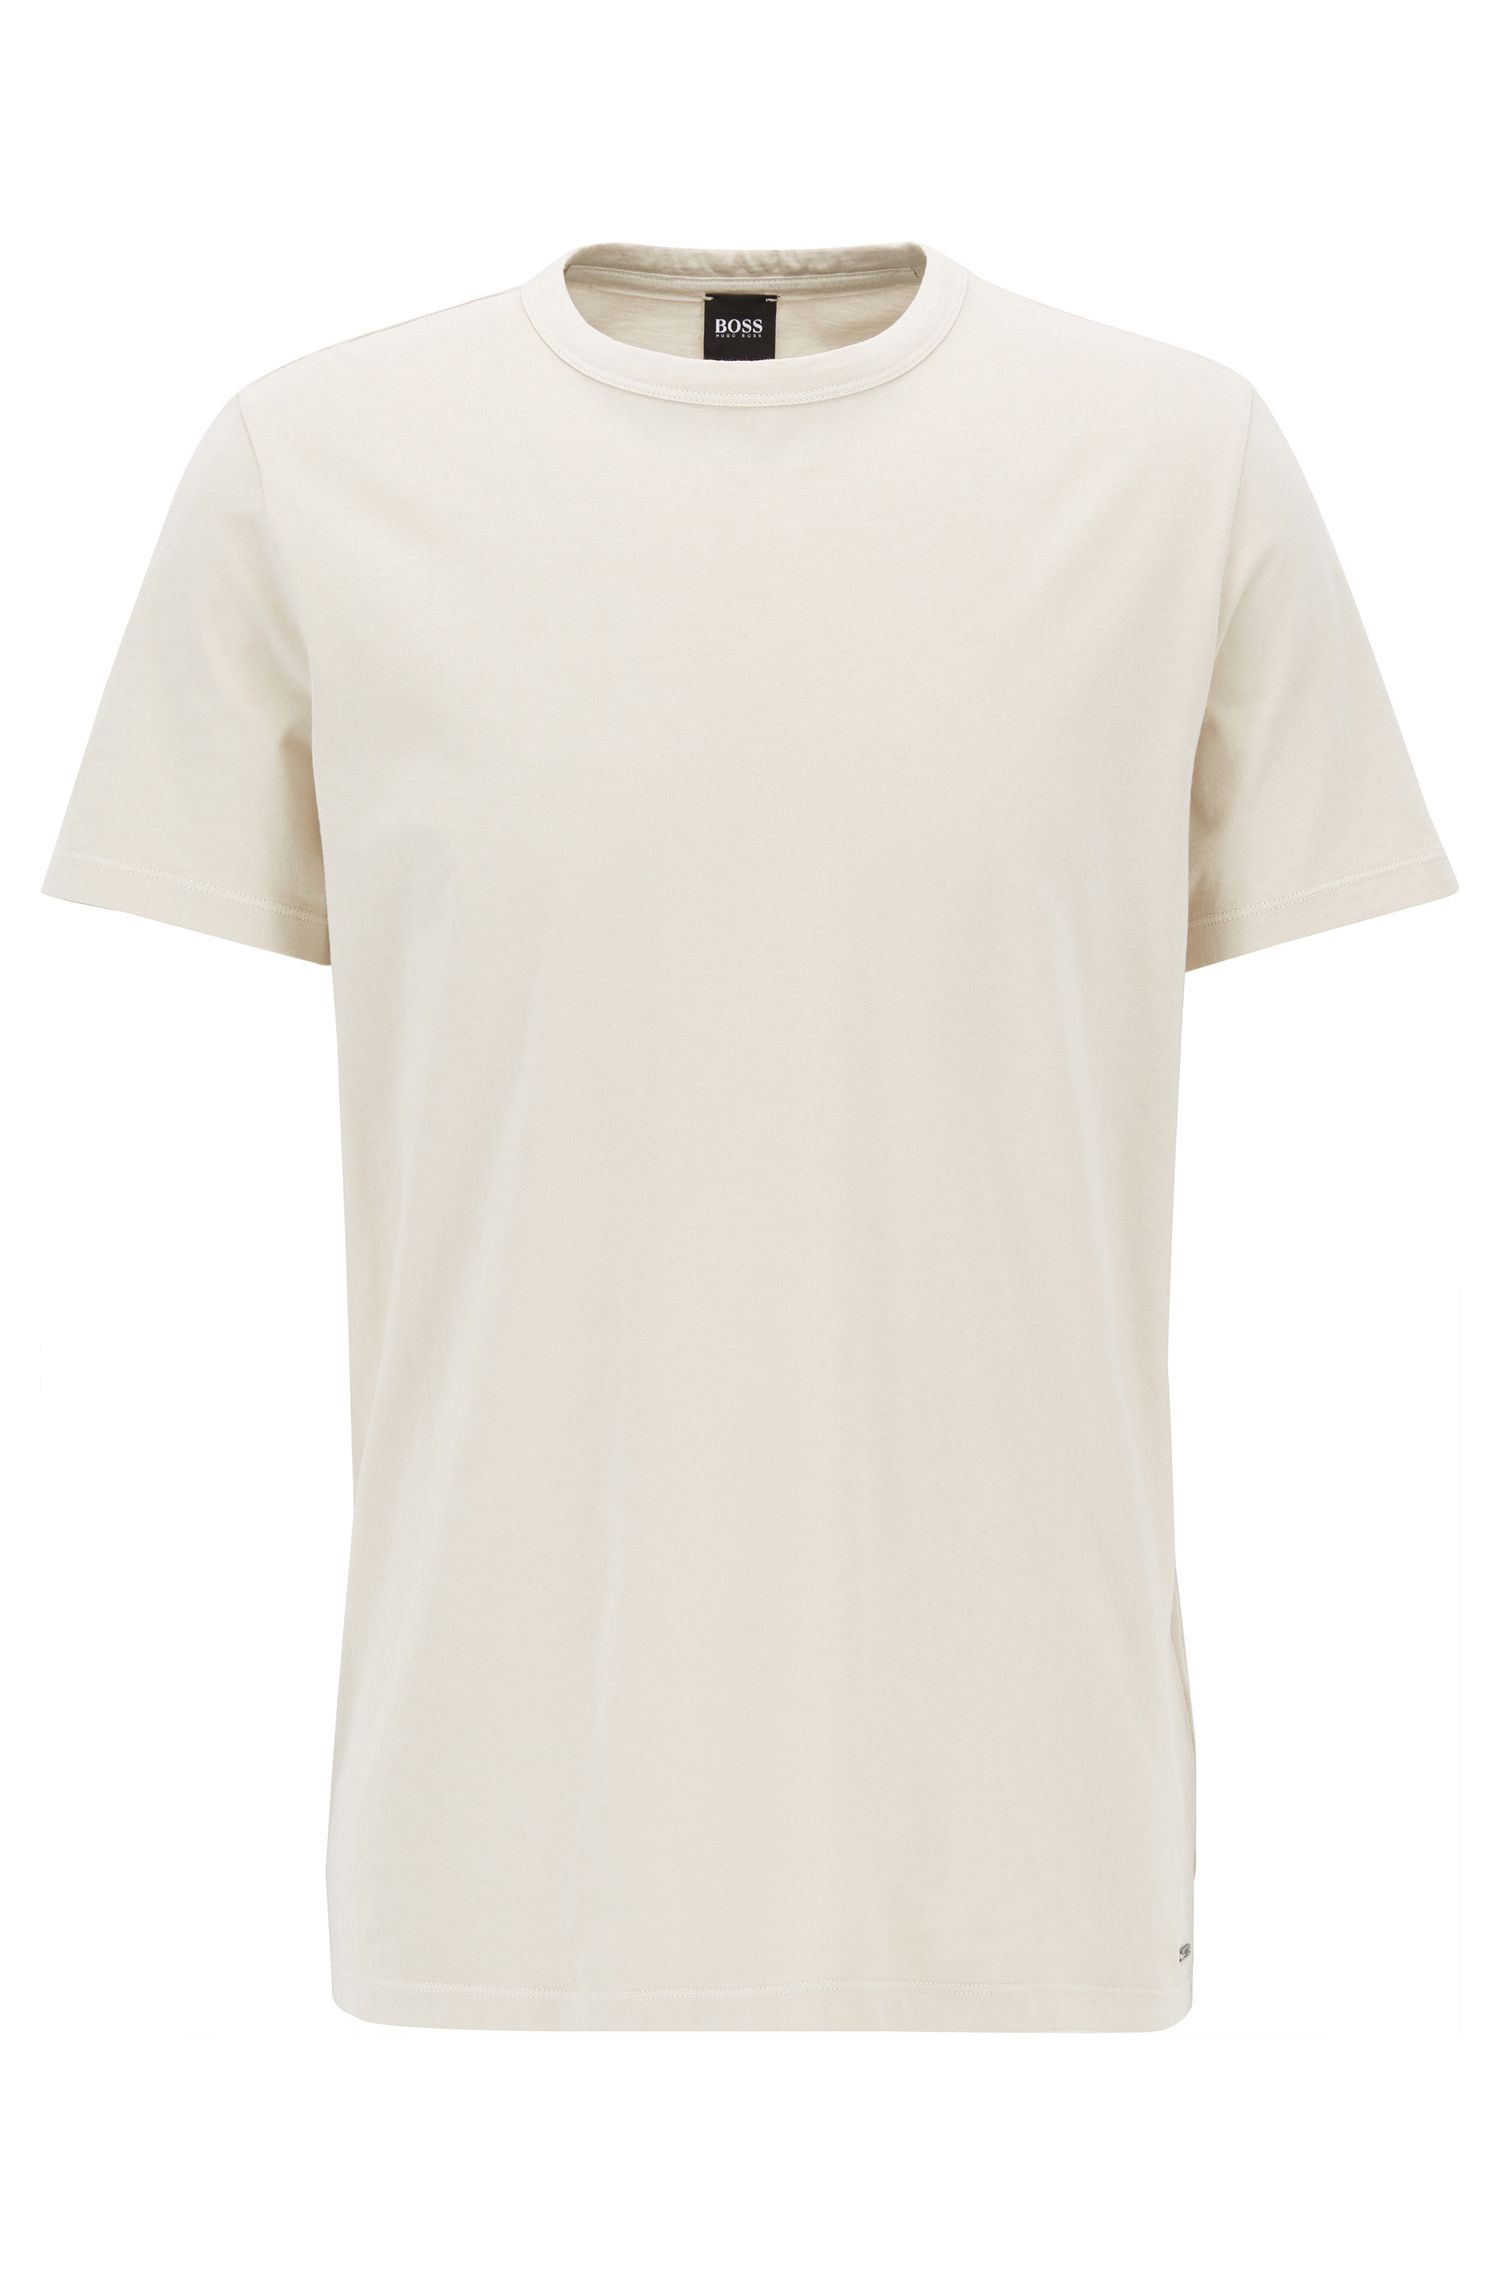 Garment Washed Cotton T-Shirt | Tessler